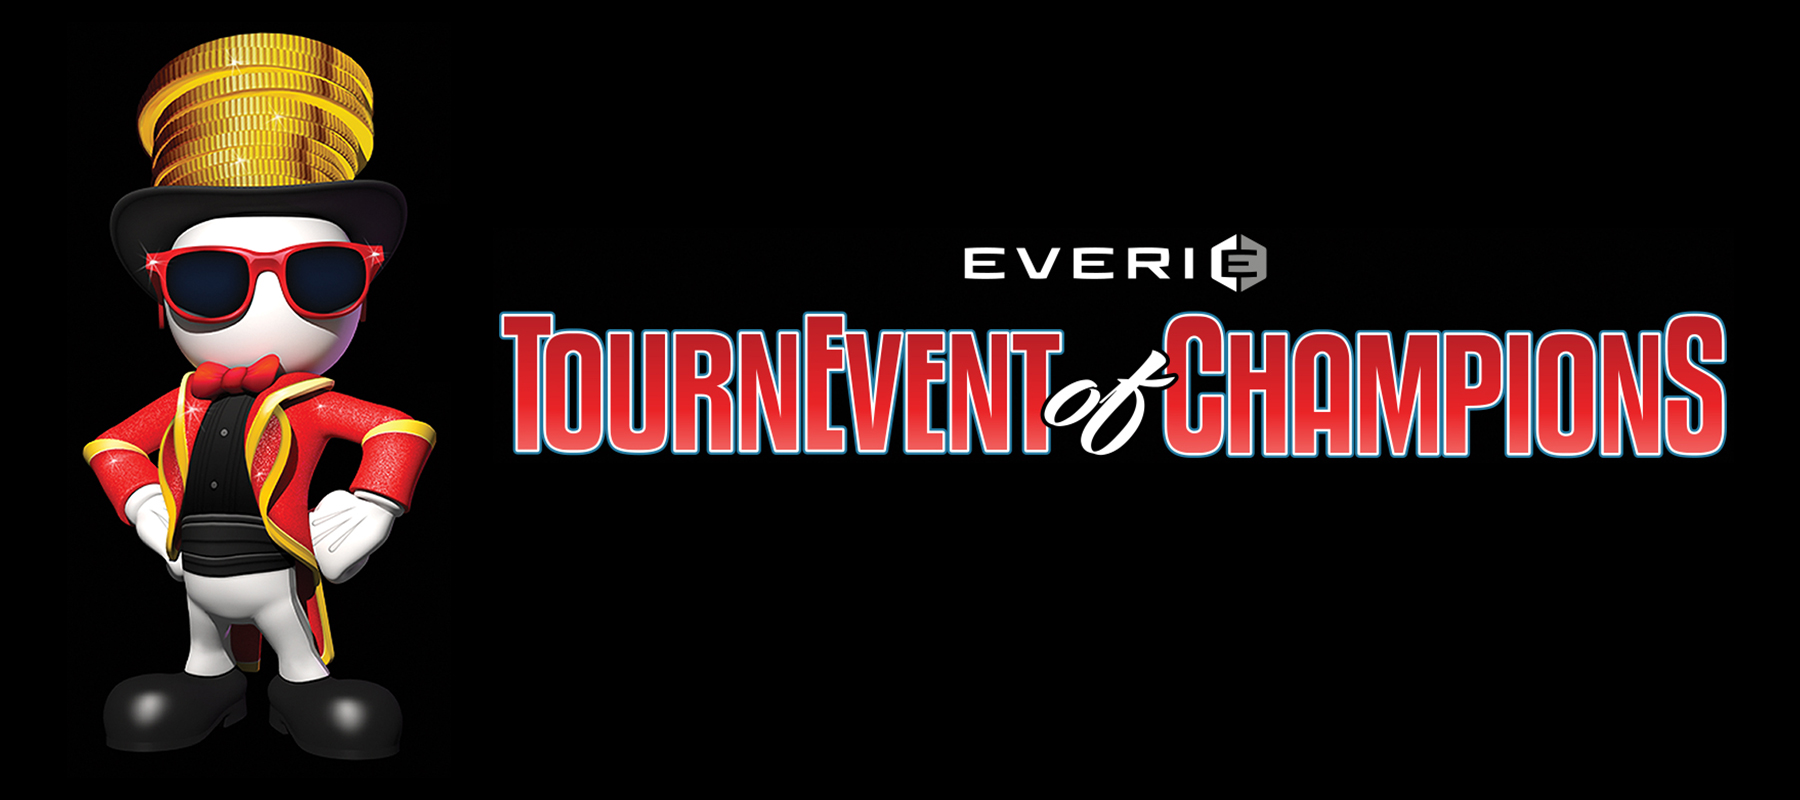 Everi Tournament